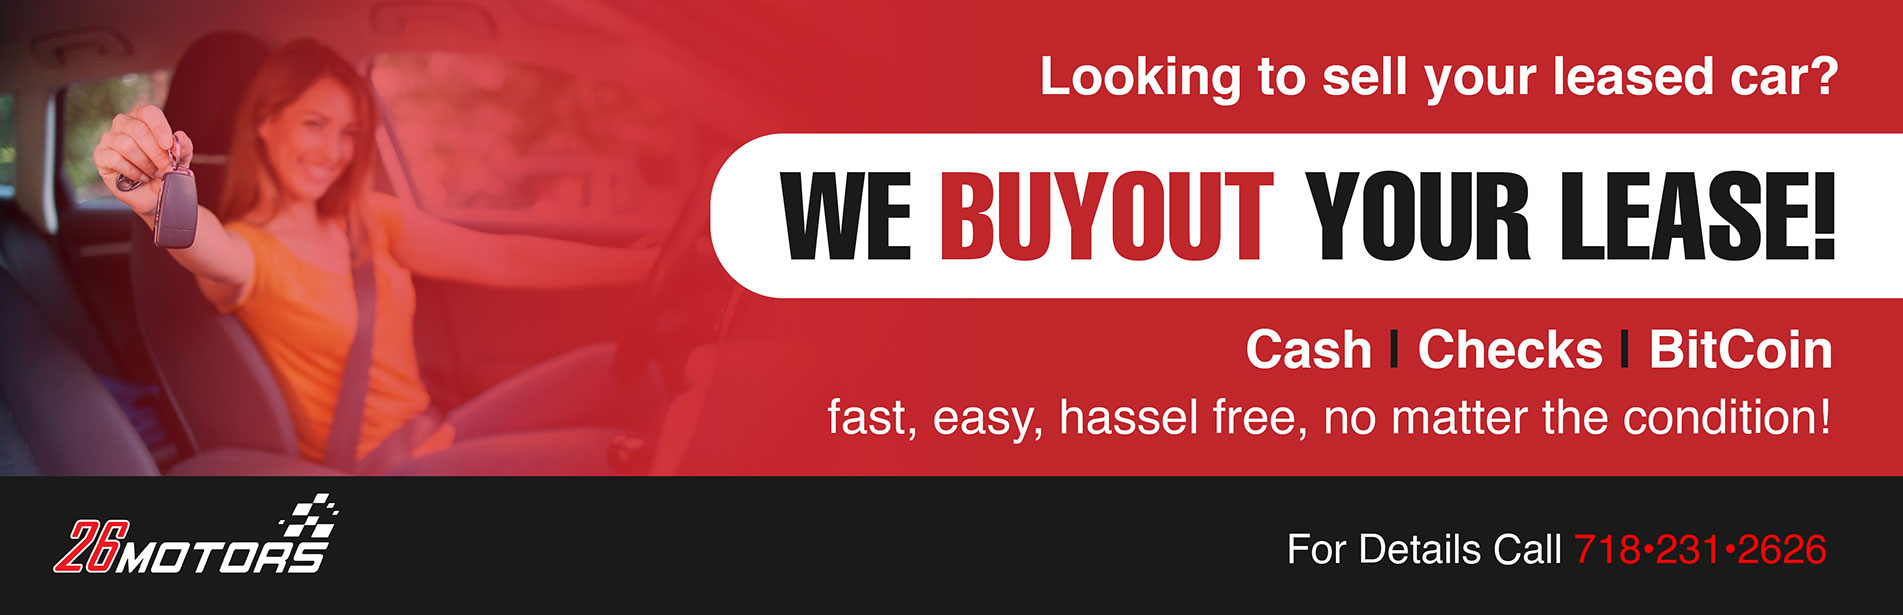 We Buyout Your Lease